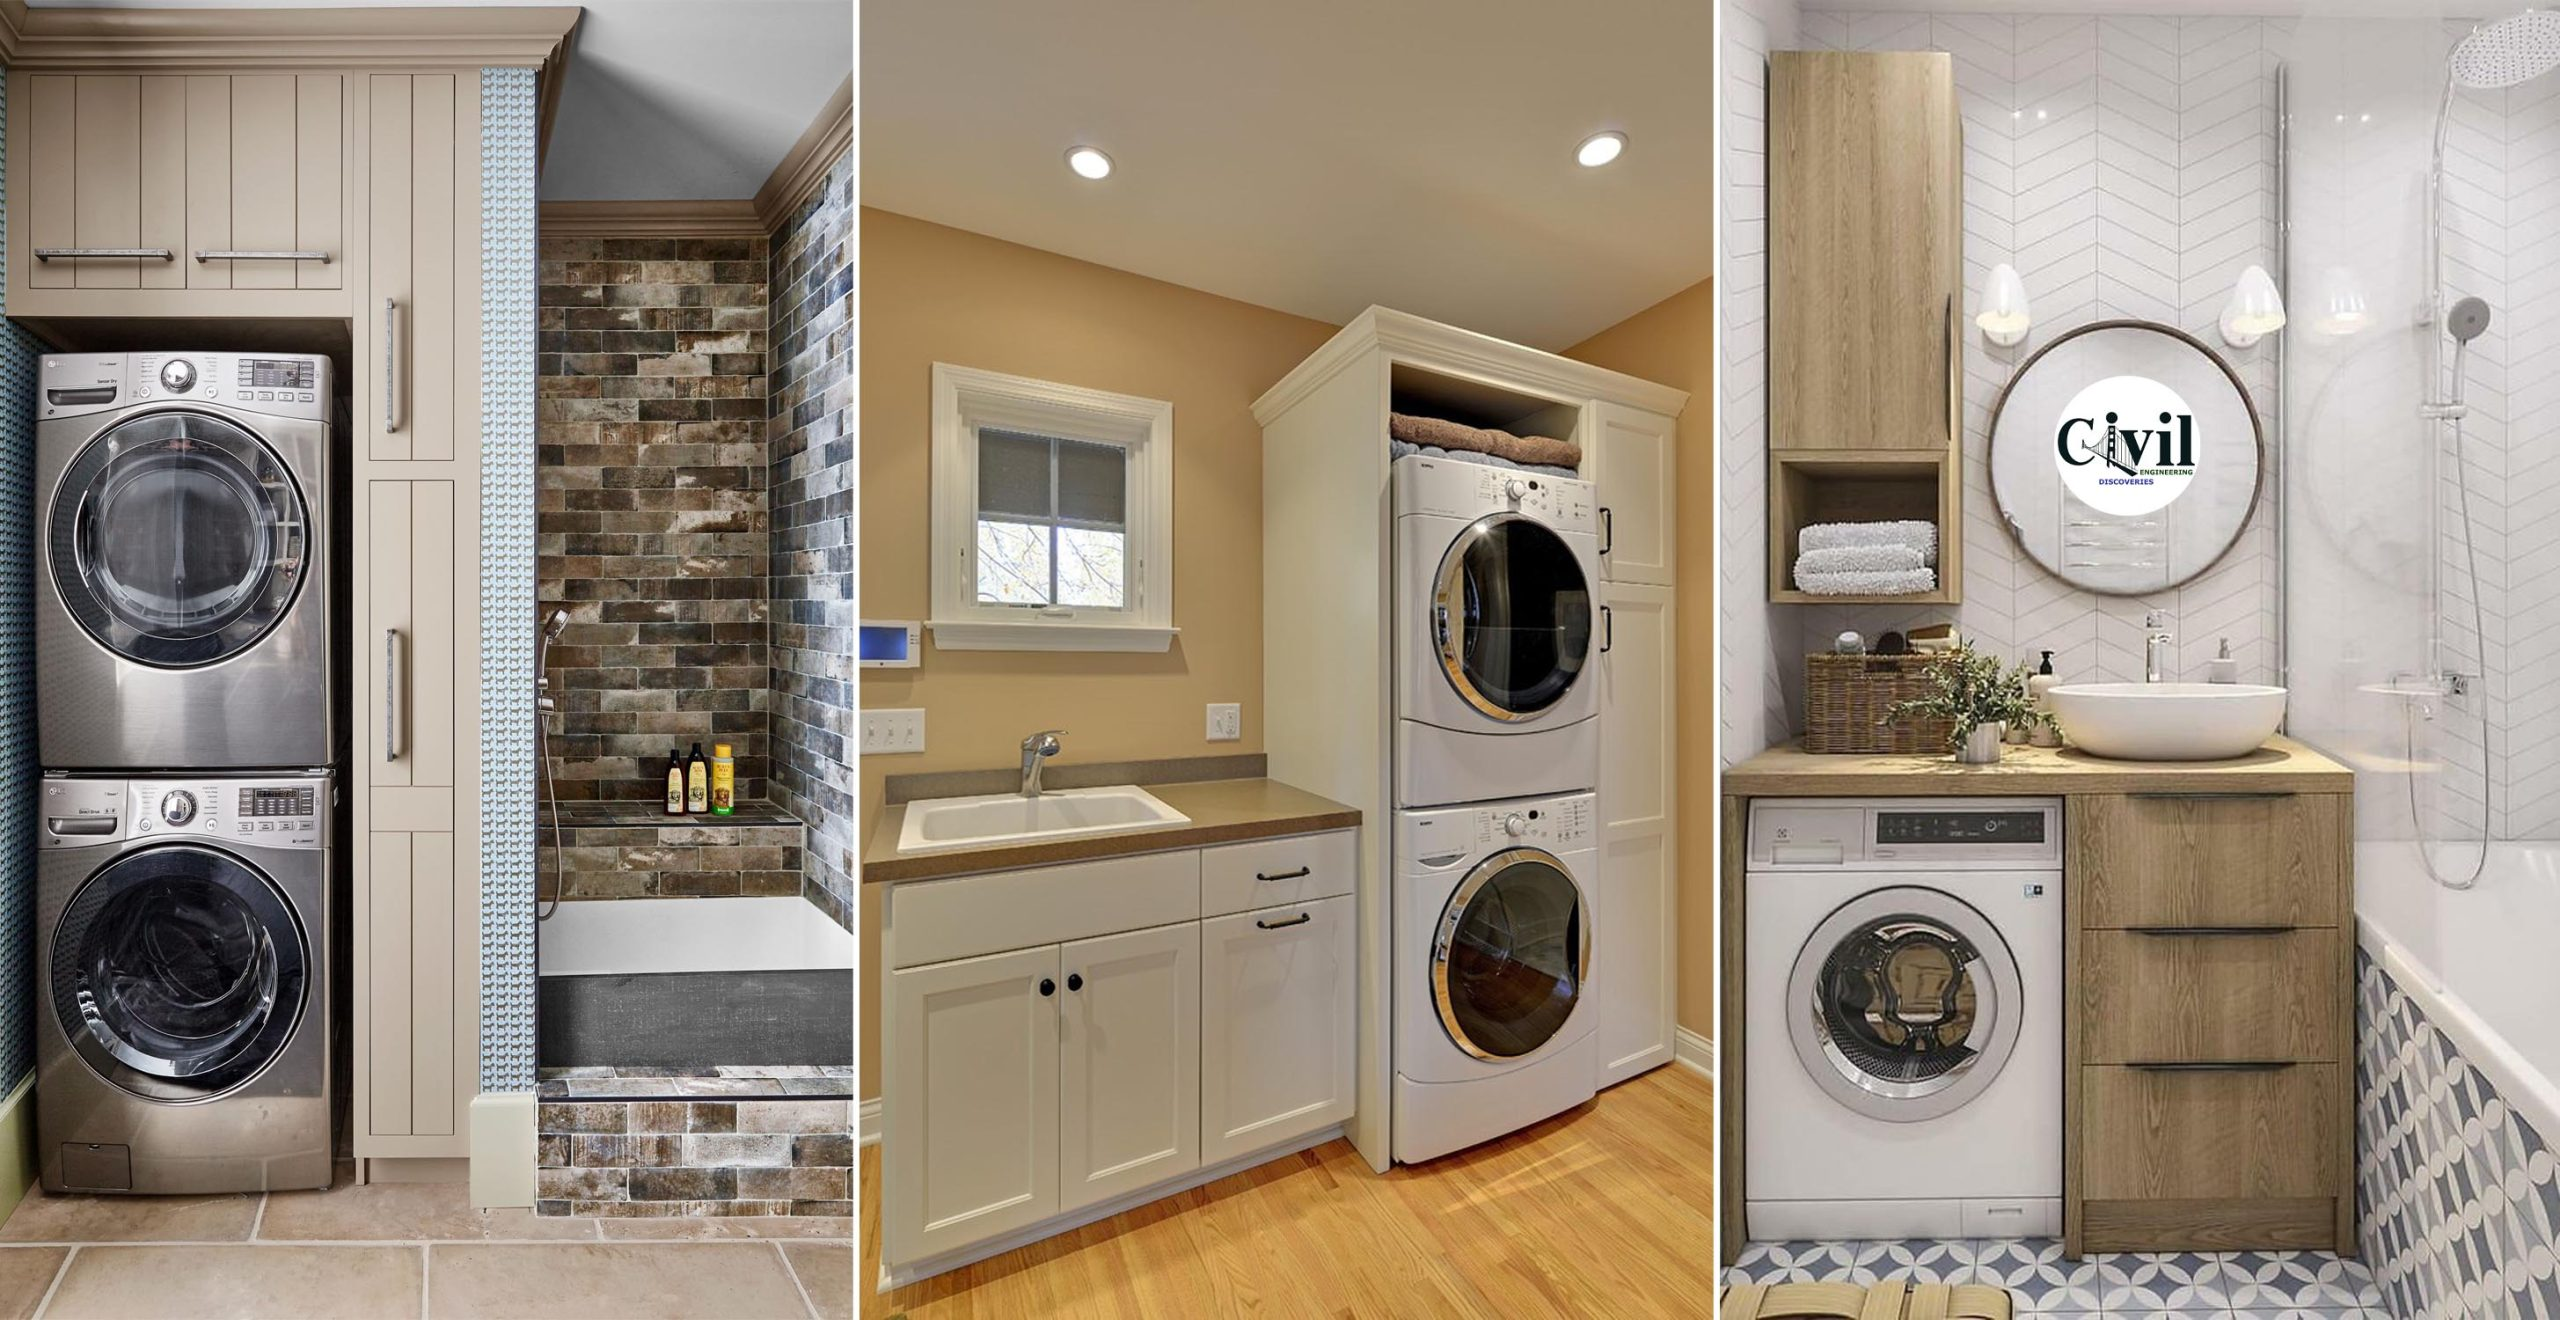 20 Brilliant Laundry Room Ideas For Small Spaces Practical And ...